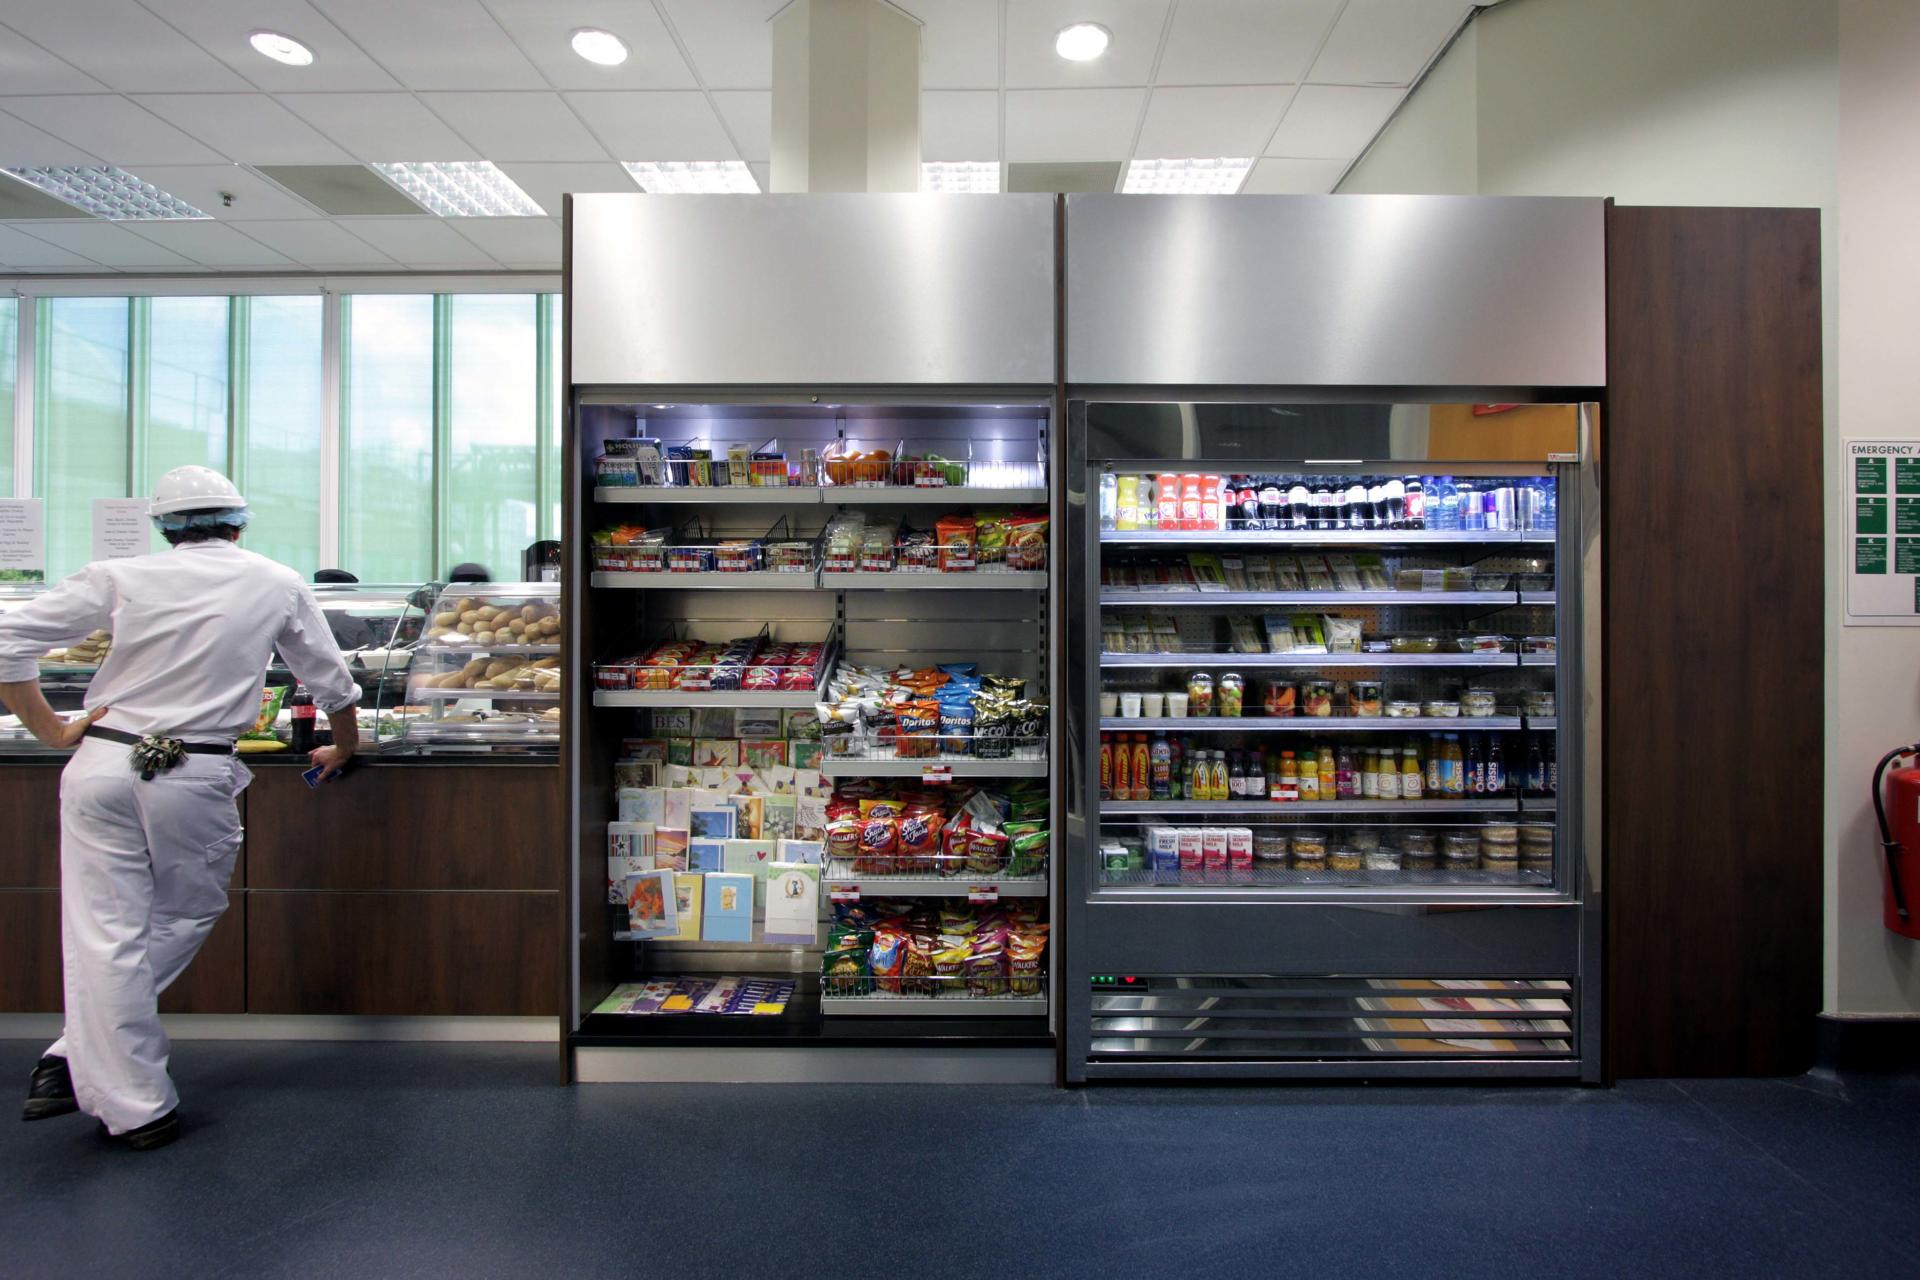 Mars-Sodexo-Slough-Staff-Severy-Front-of-house-Servery-Food-Display-spacecatering_4